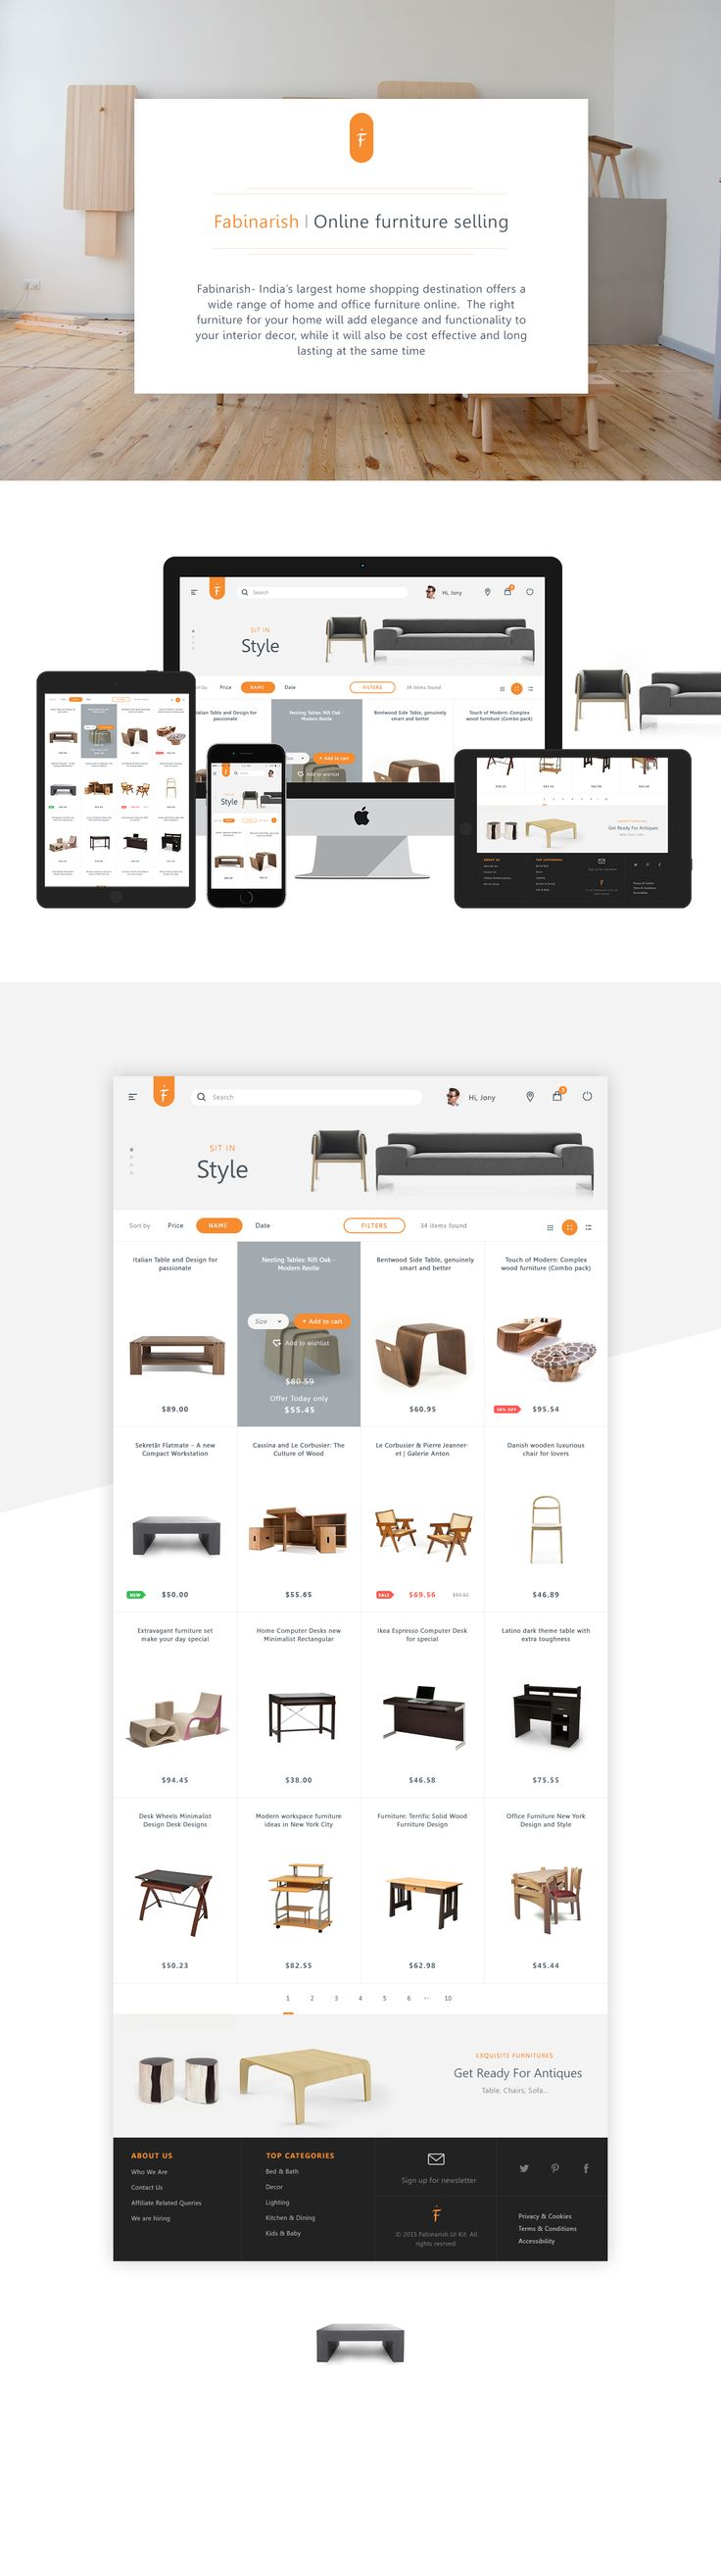 Workin On Catalog For A Furniture Website